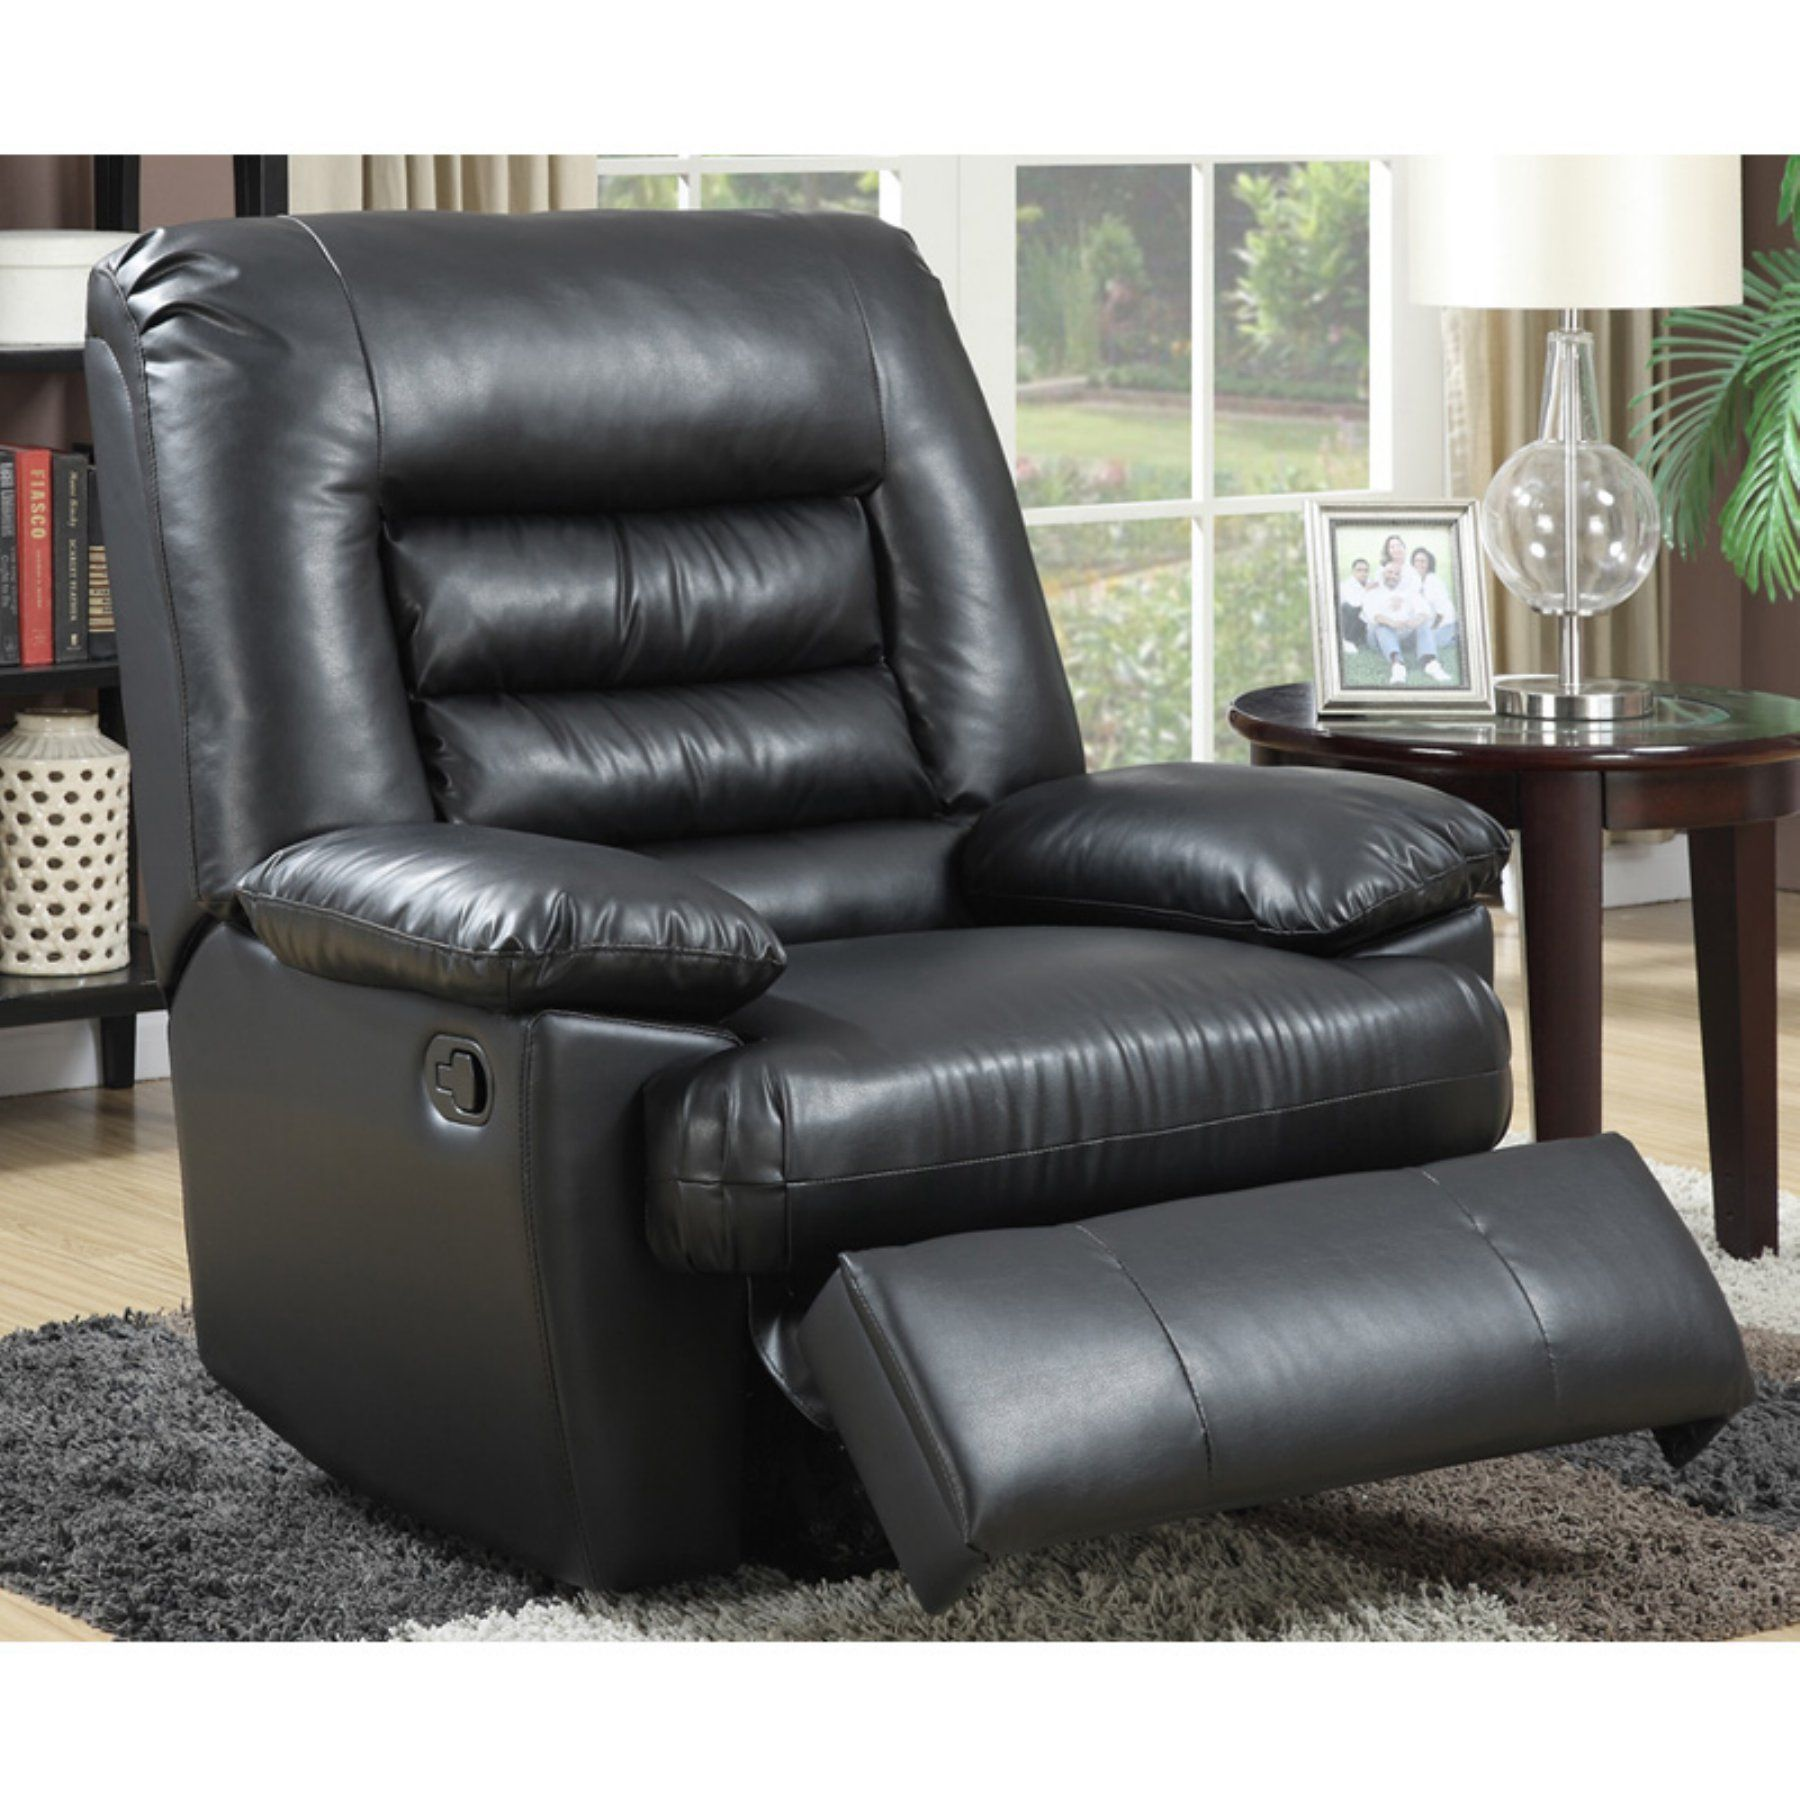 Serta big tall faux leather memory foam massage recliner fd98007d3855434b90c054712ae92c22